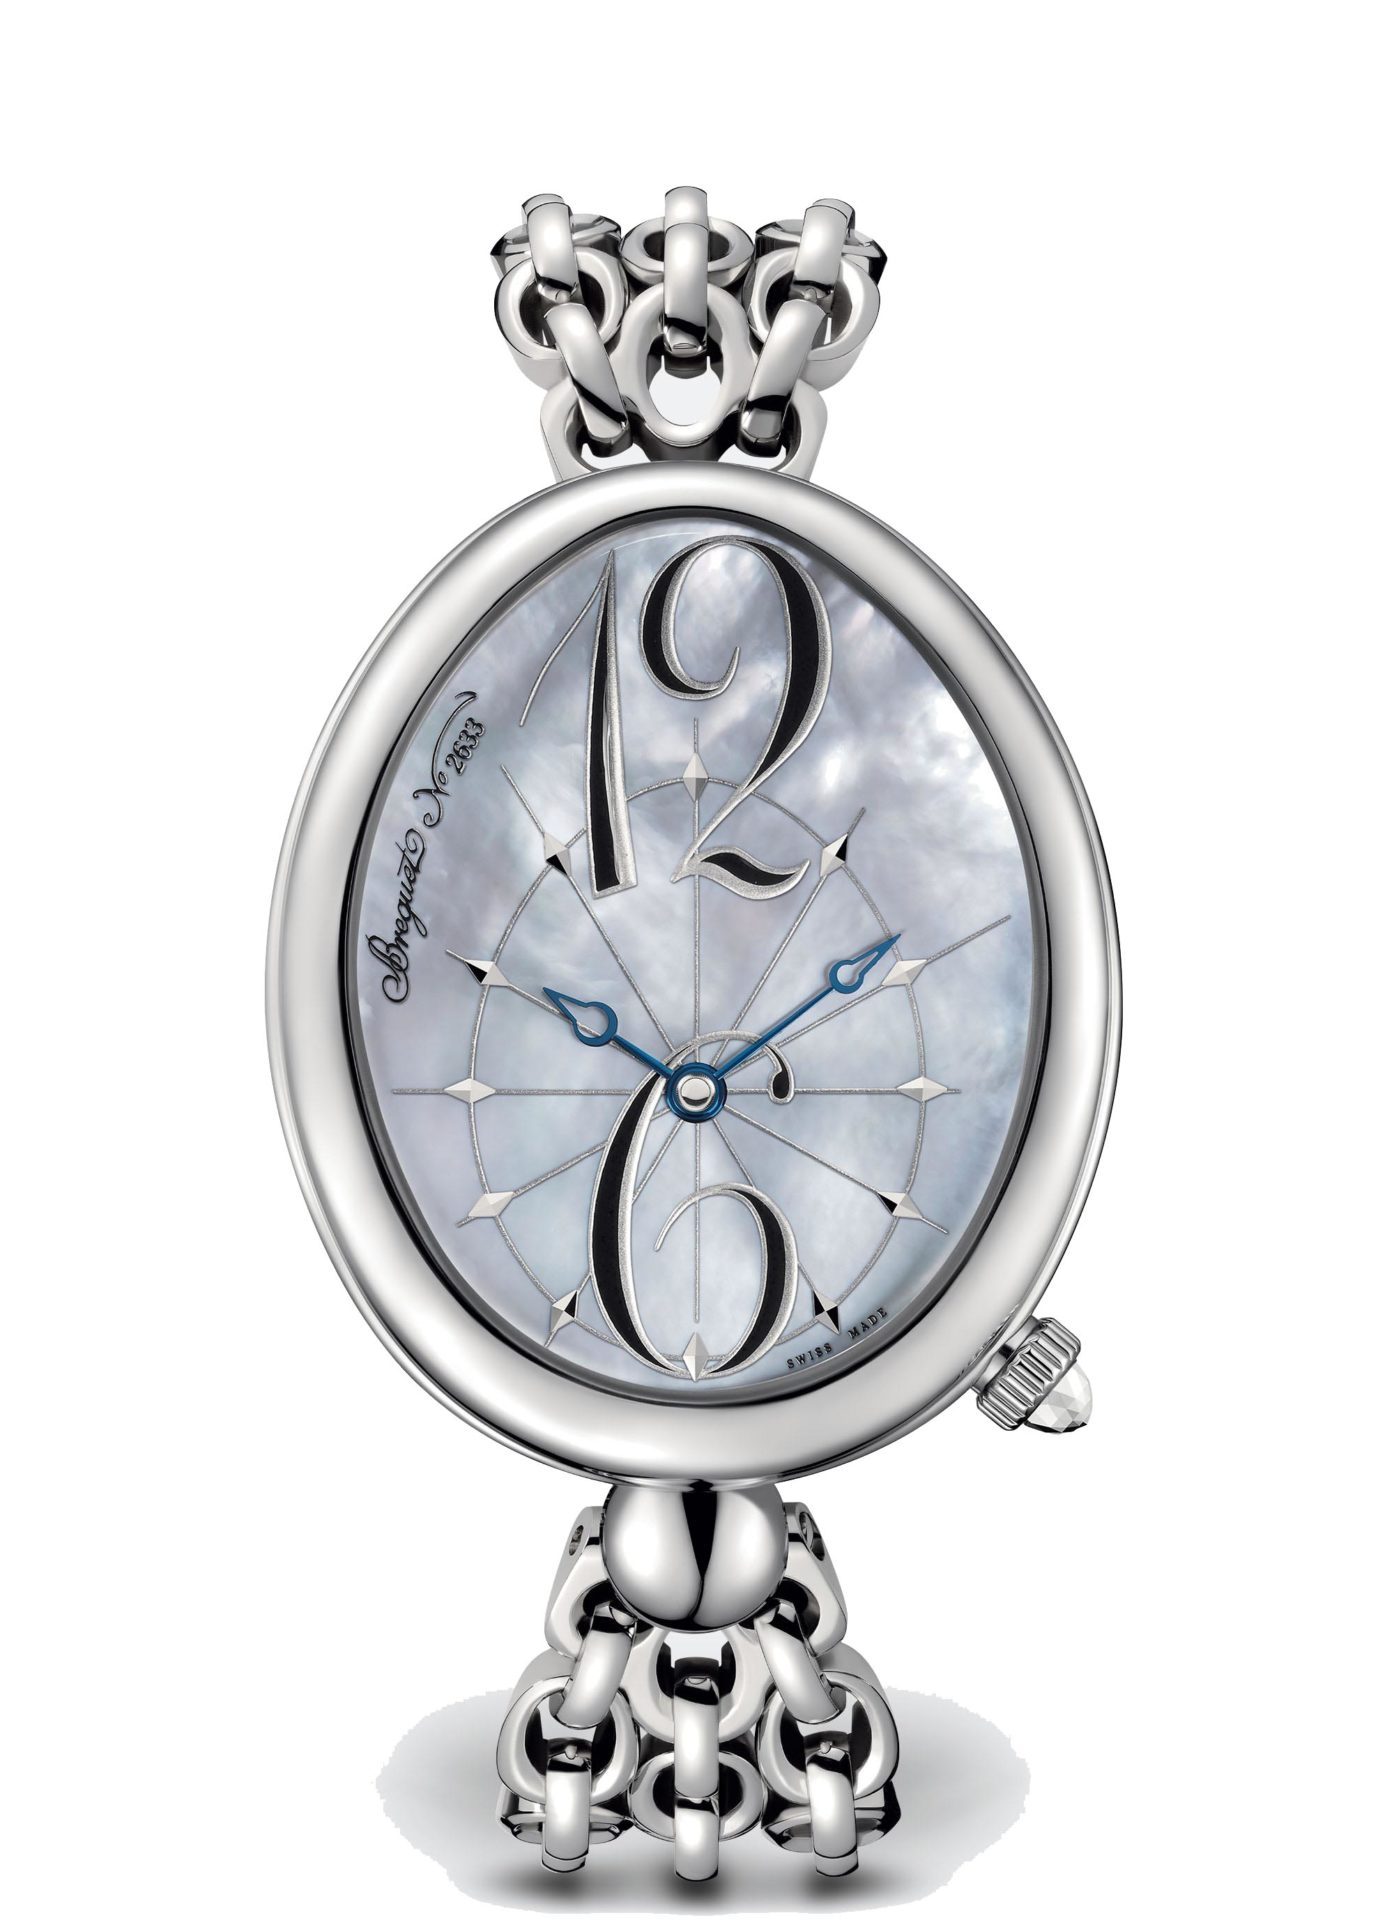 Breguet-Reine-de-Naples-8967-Hall-of-Time-8967st-58-j50